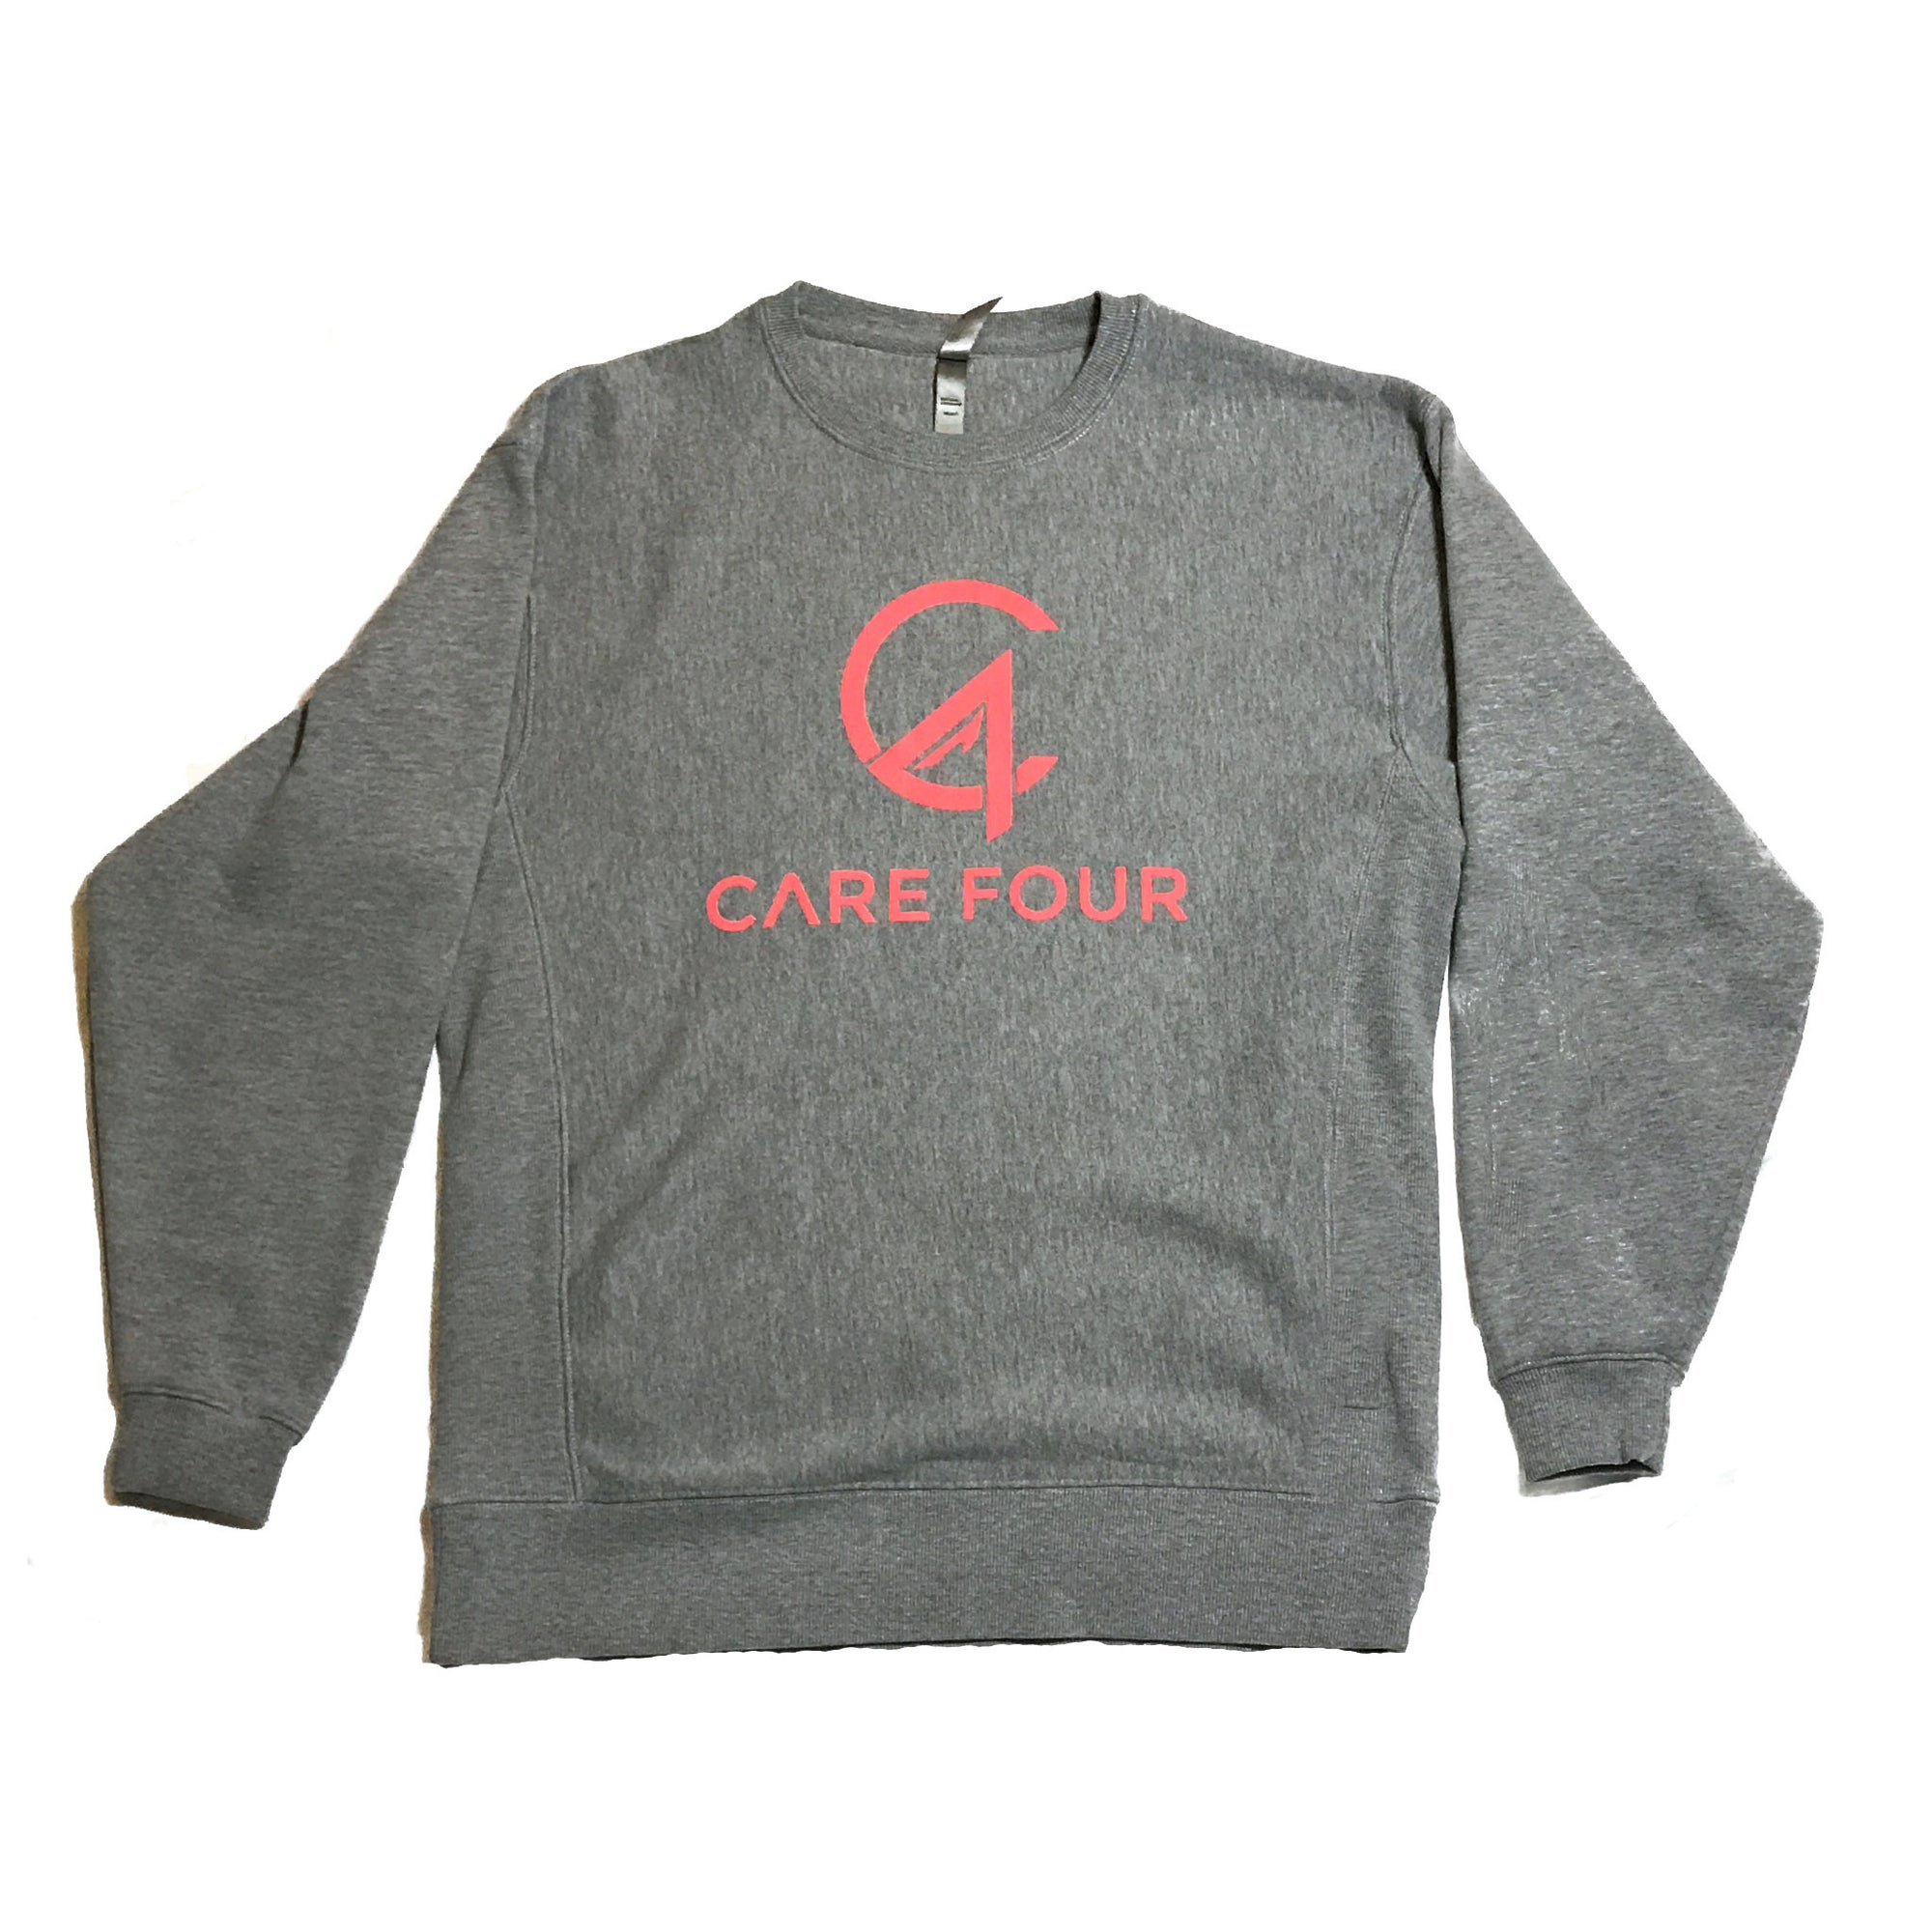 Peach C4 Crewneck Sweatshirt - Care Four